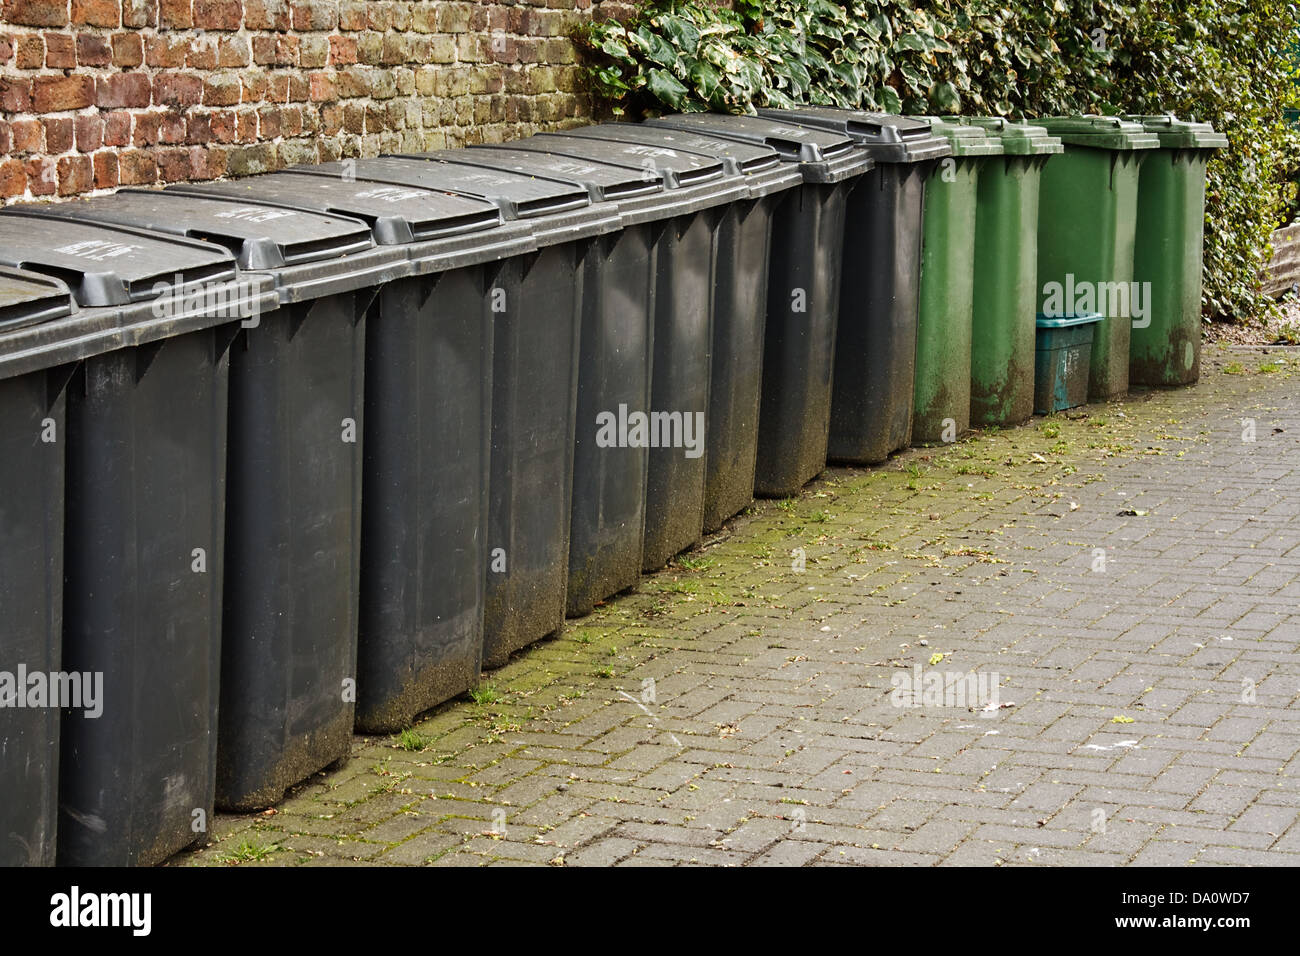 Horizontal ine of wheelie bins used for the storage of domestic rubbish or household garbage disposal - Stock Image